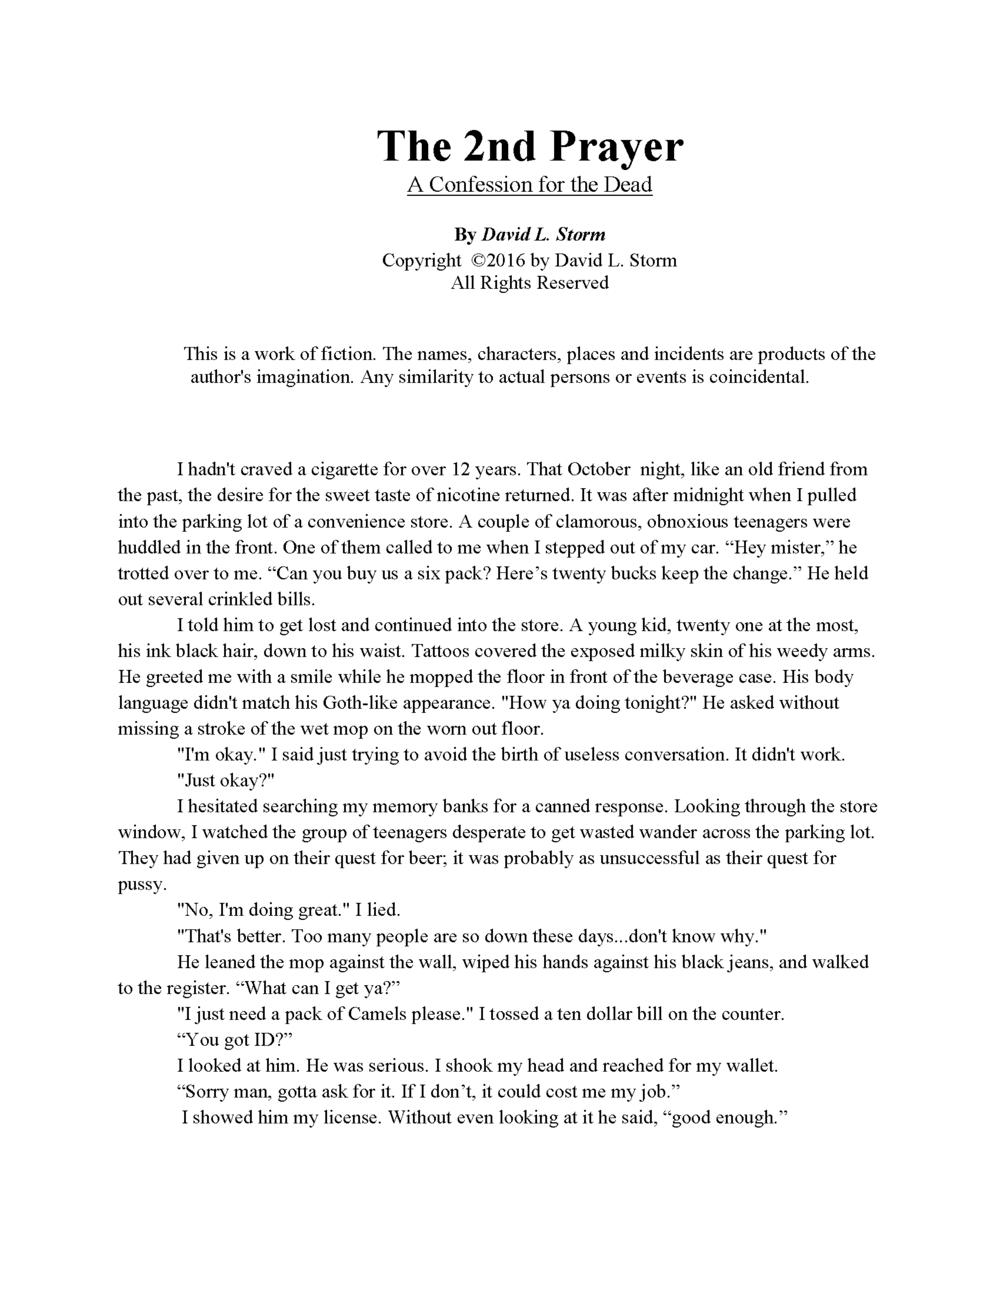 102-Second Prayer Full Story_Page_01.png